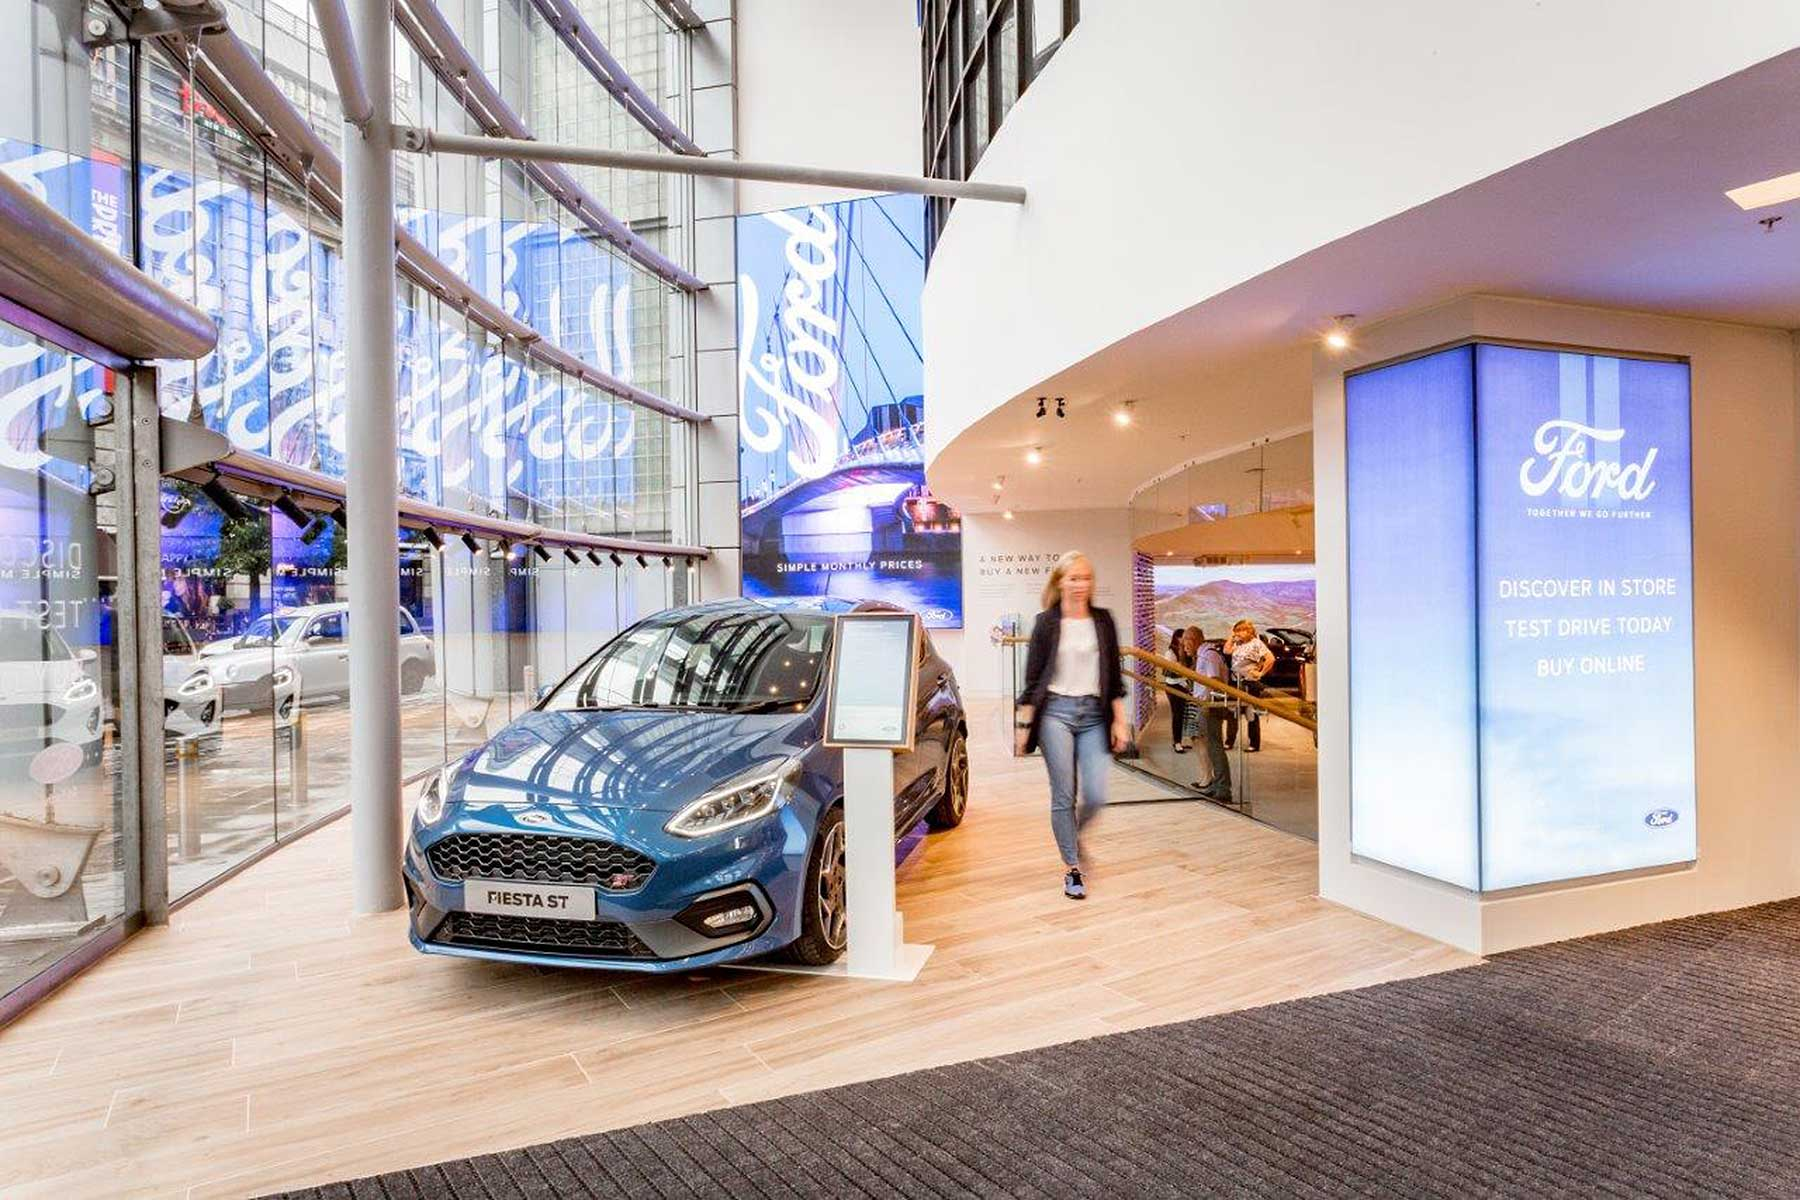 Ford has introduced the new buy online service to coincide with the opening of its first retail experience fordstore this is set within the new next